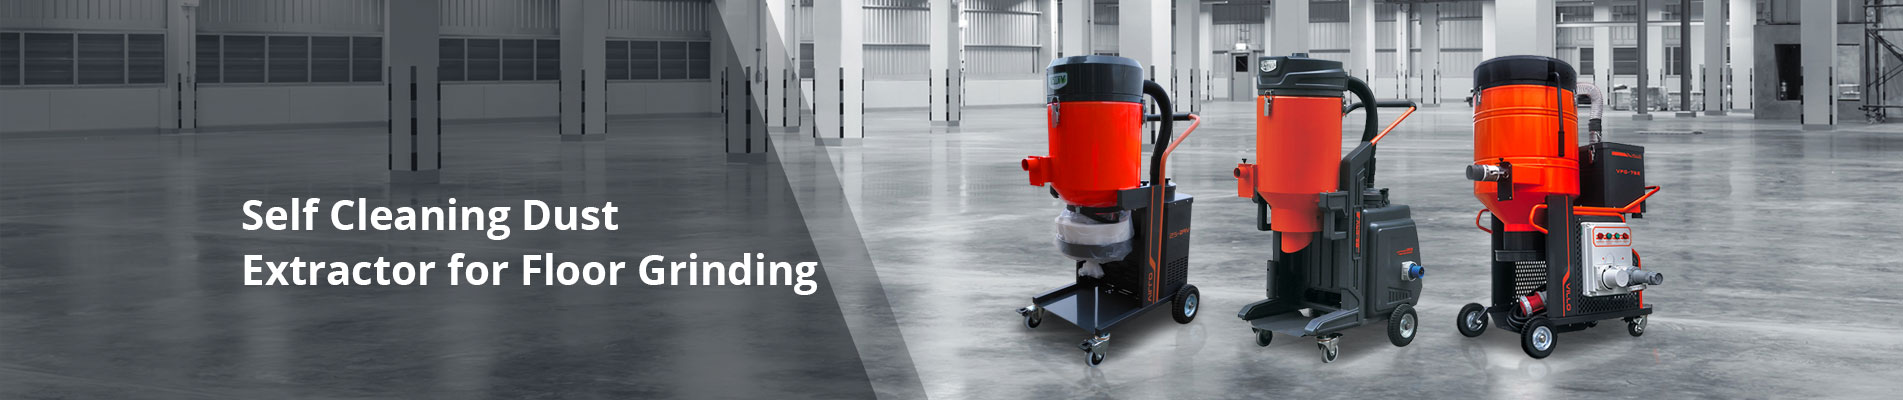 self cleaning dust extractor for floor grinding